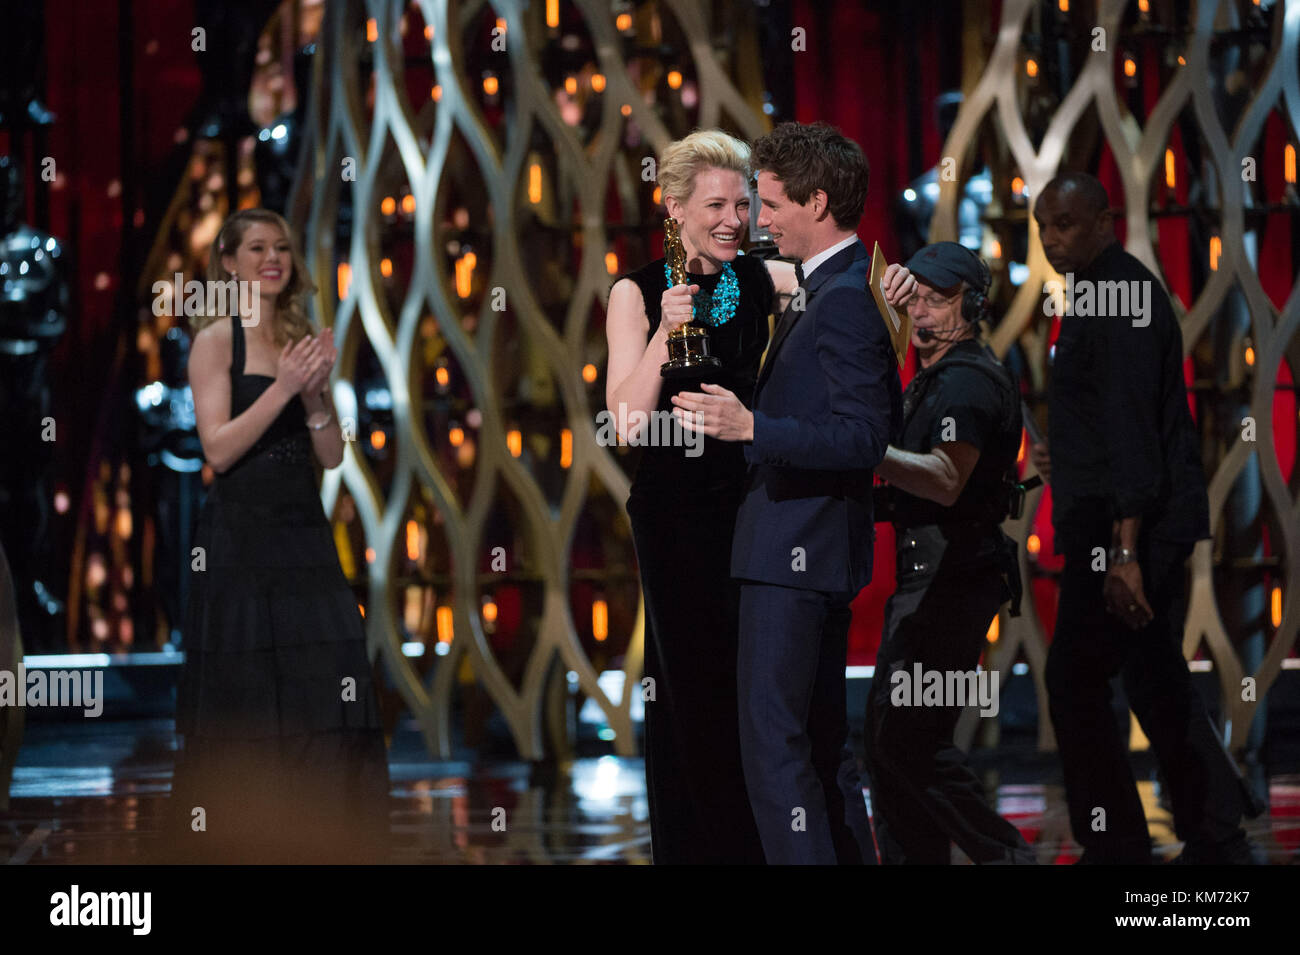 HOLLYWOOD, CA - FEBRUARY 22: Cate Blanchett and Eddie Redmayne onstage during the 87th Annual Academy Awards at - Stock Image